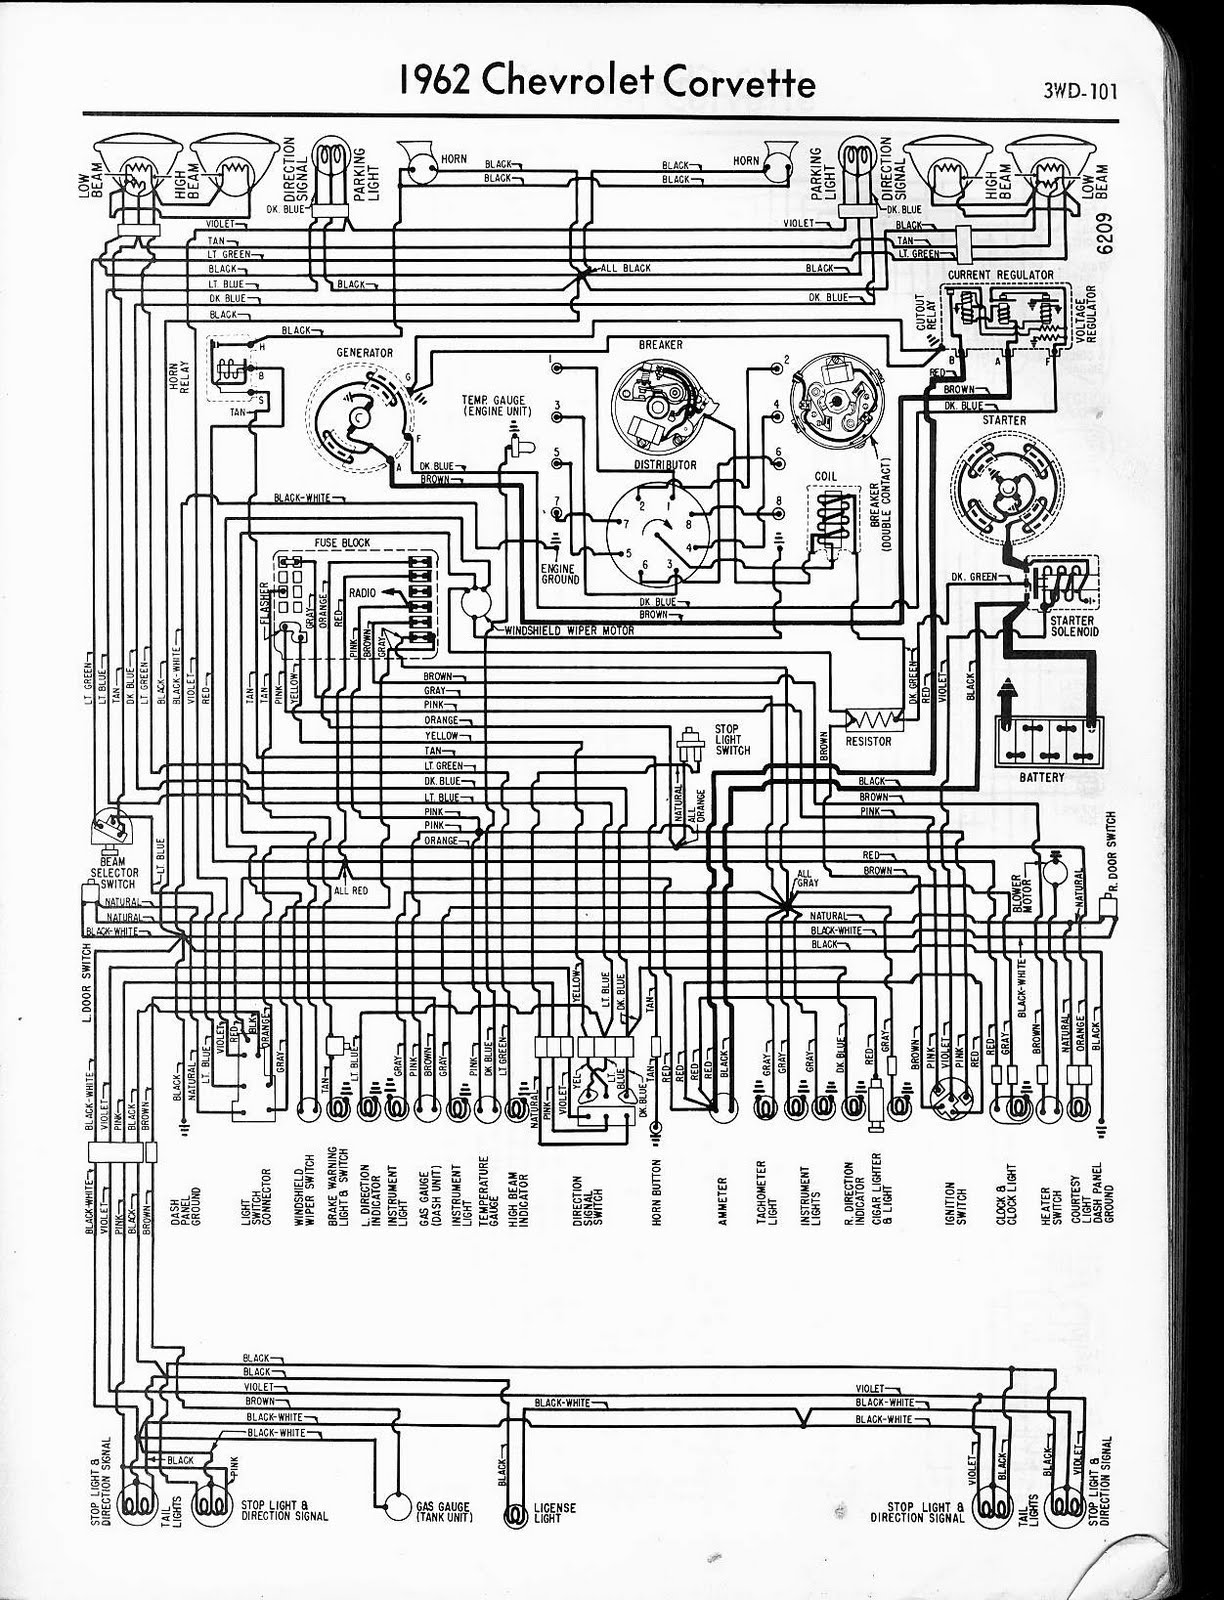 wiring diagrams chevy truck 1962 the wiring diagram 1962 chevy pickup fuse box 1962 wiring diagrams for car or wiring